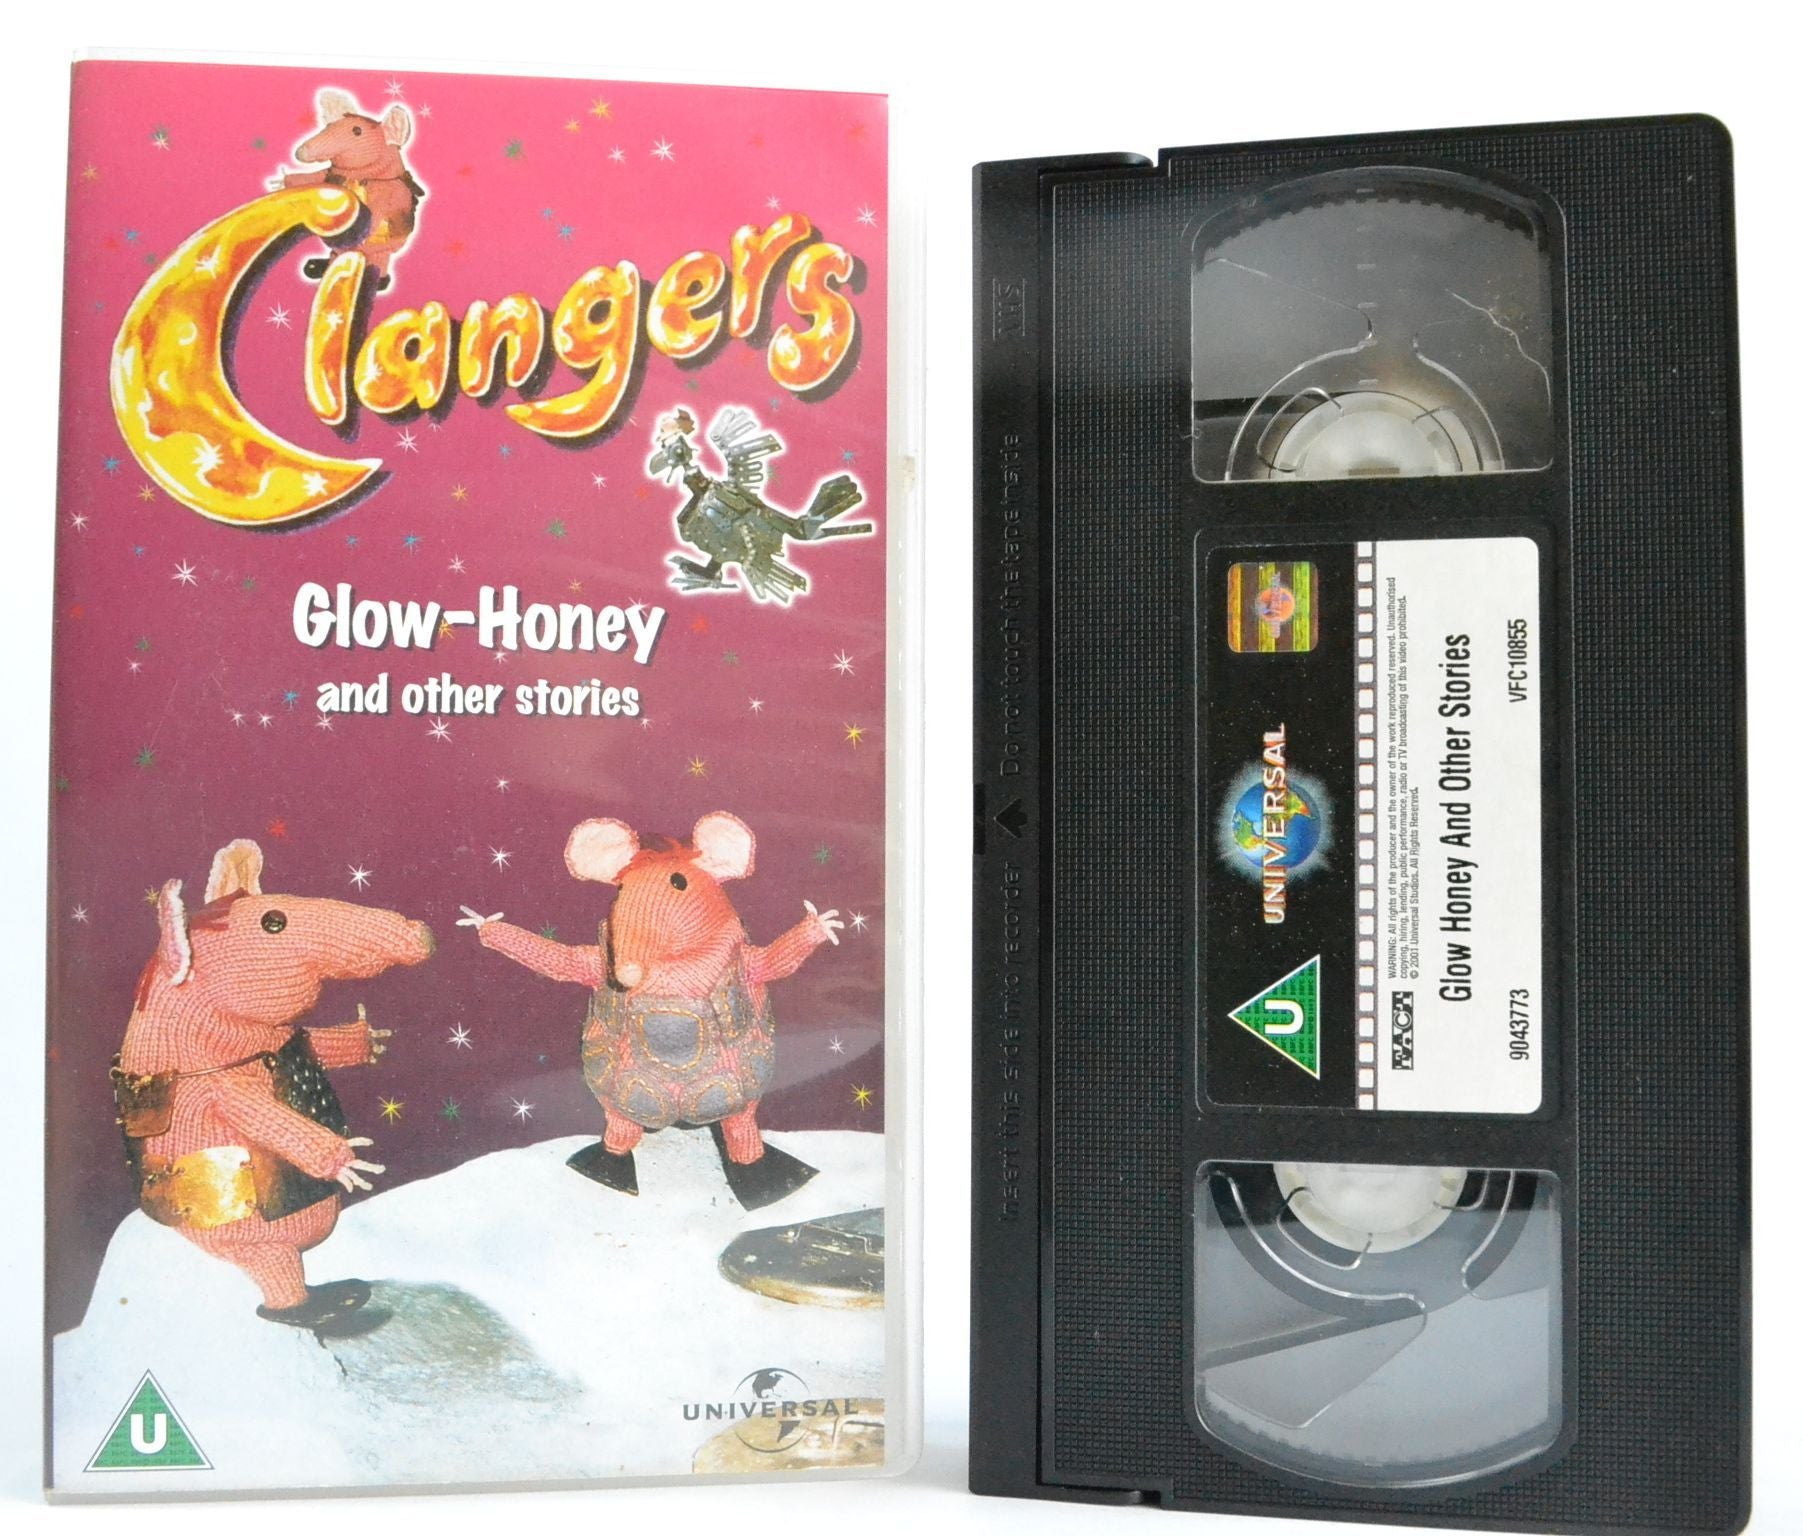 Clangers: Glow-Honey - The Seed - The Music Of The Spheres (1970) Kids - VHS